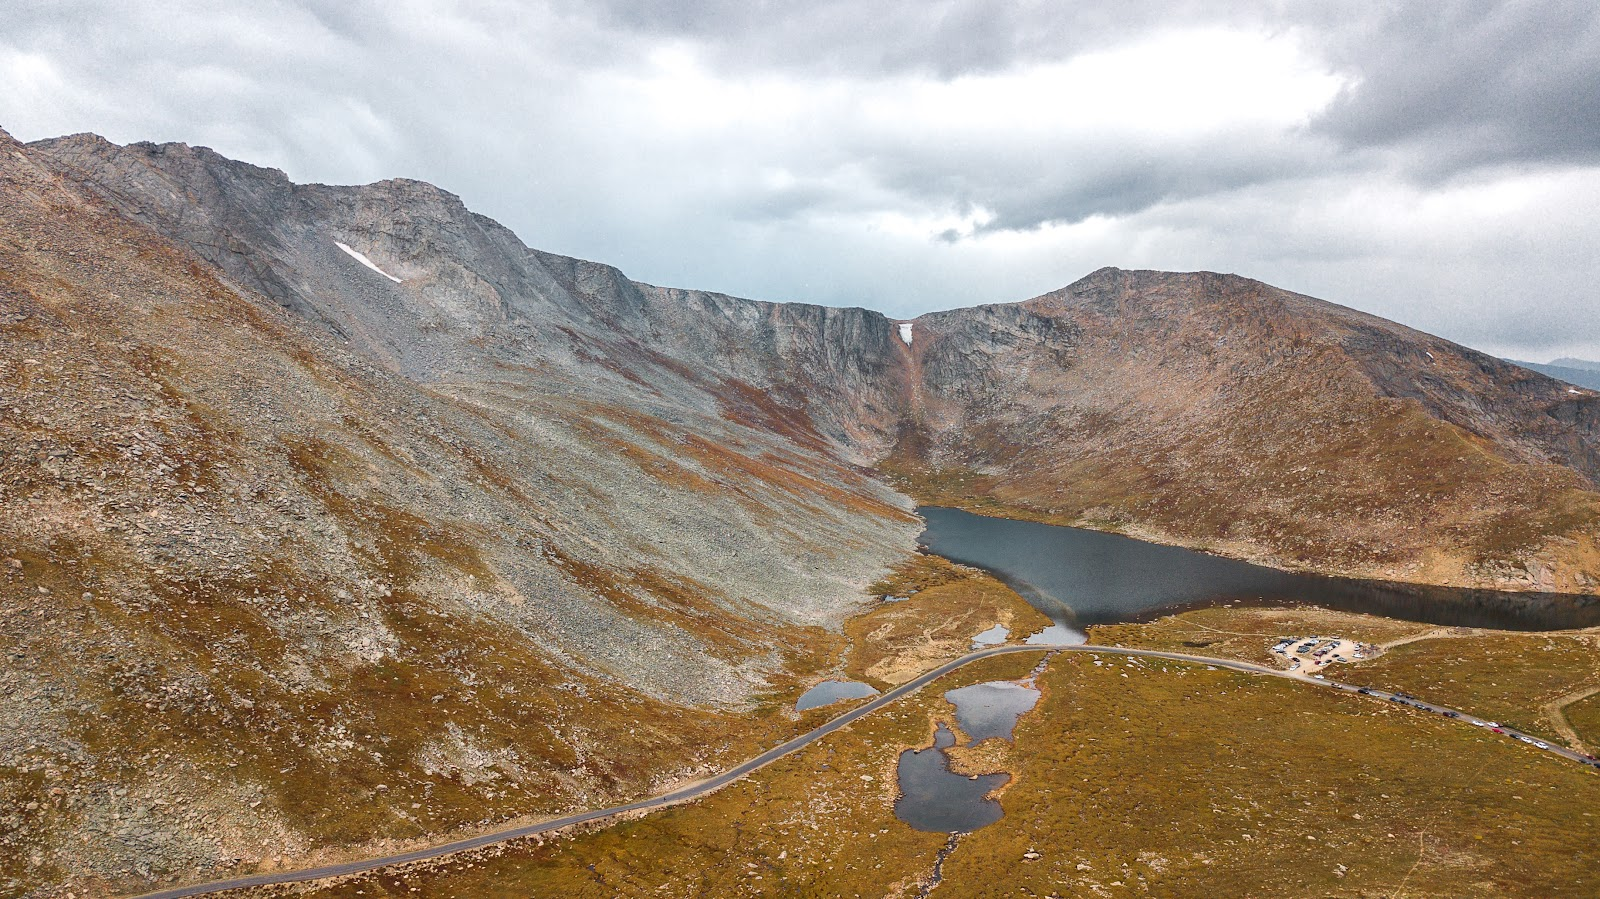 Cycling Mt. Evans - aerial drone photo of Summit Lake